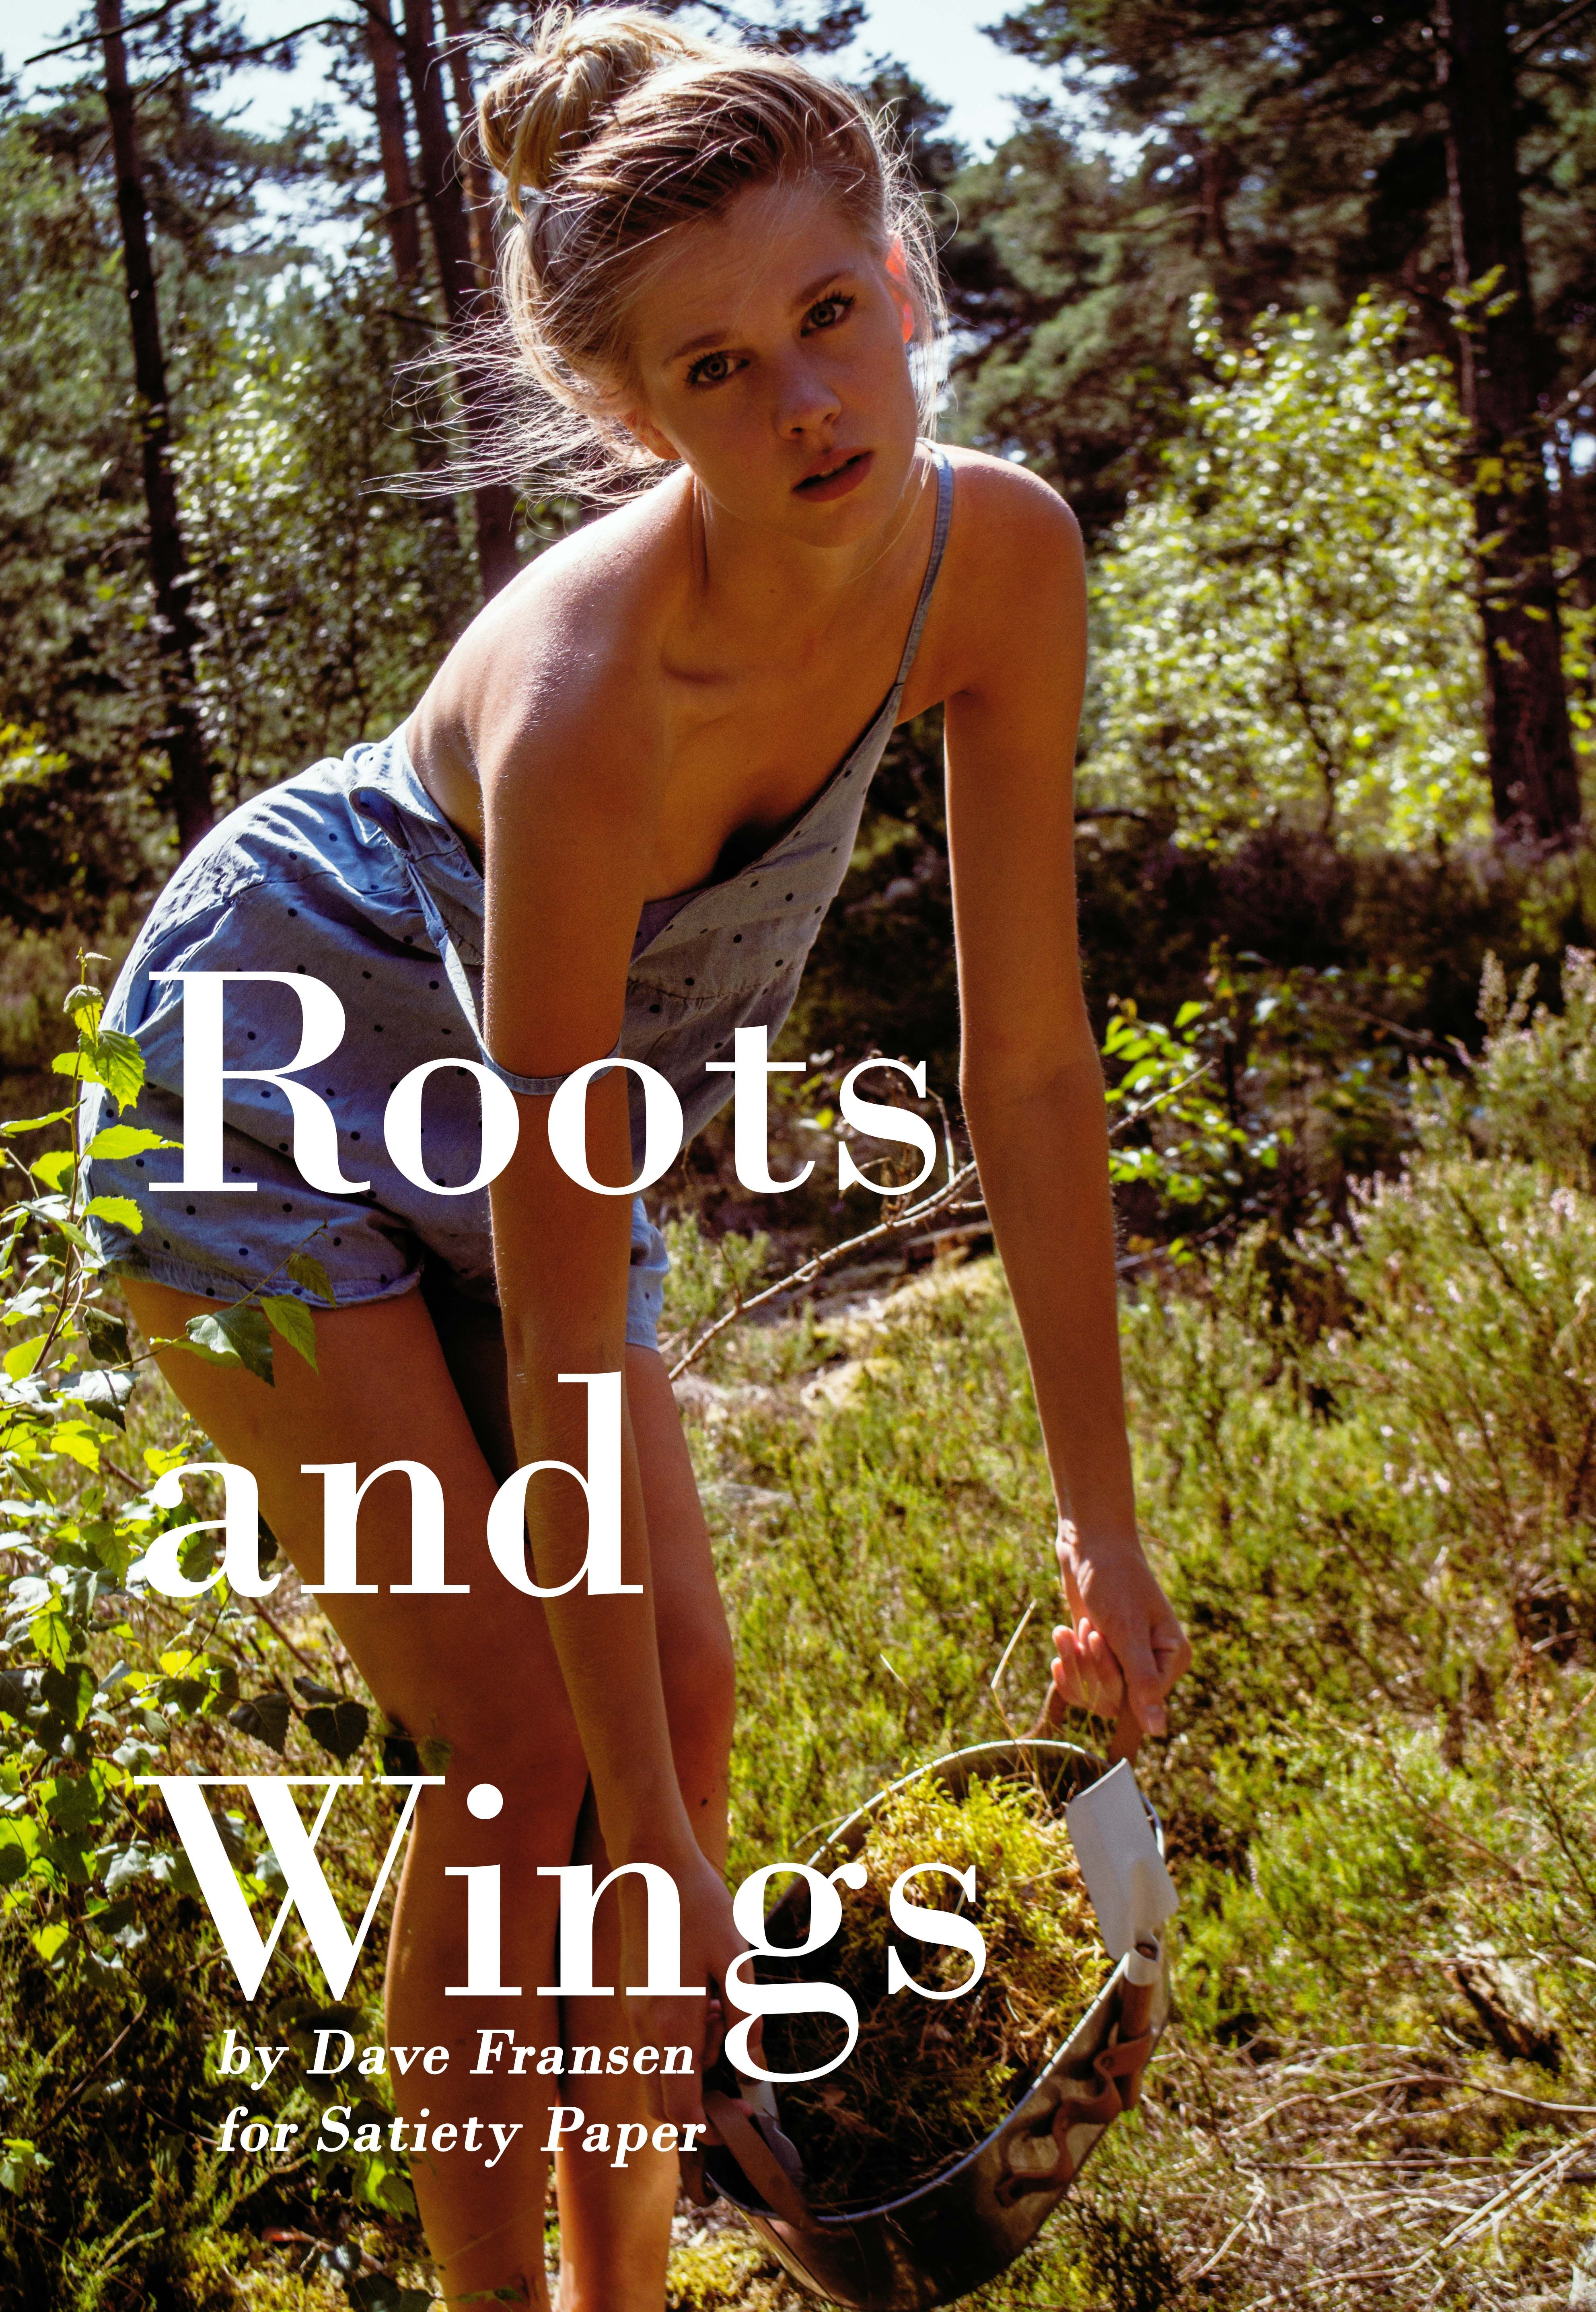 astralnymphets naked imagesize:00170 roots-and-wings-roos-vughts-by-dave-fransen-for-satiety-paper-2-the-fall-flight-2014-cover-1.jpg  (Image JPEG, 3968 × 5748 pixels) - Redimensionnée …